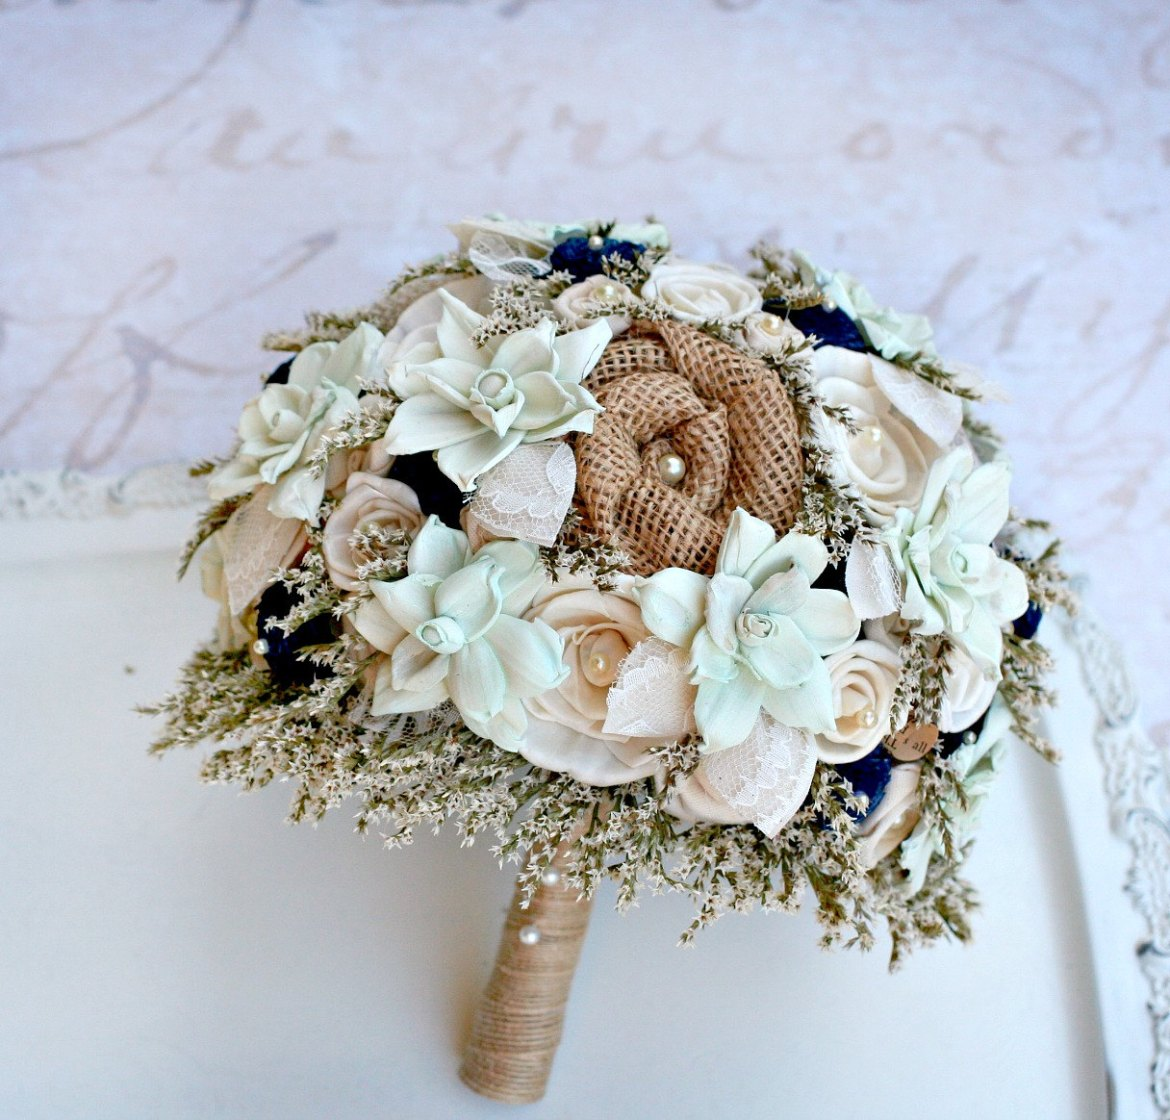 Where to buy sola flowers for weddings ask emmaline where to buy sola flowers bouquet by the sunny bee http izmirmasajfo